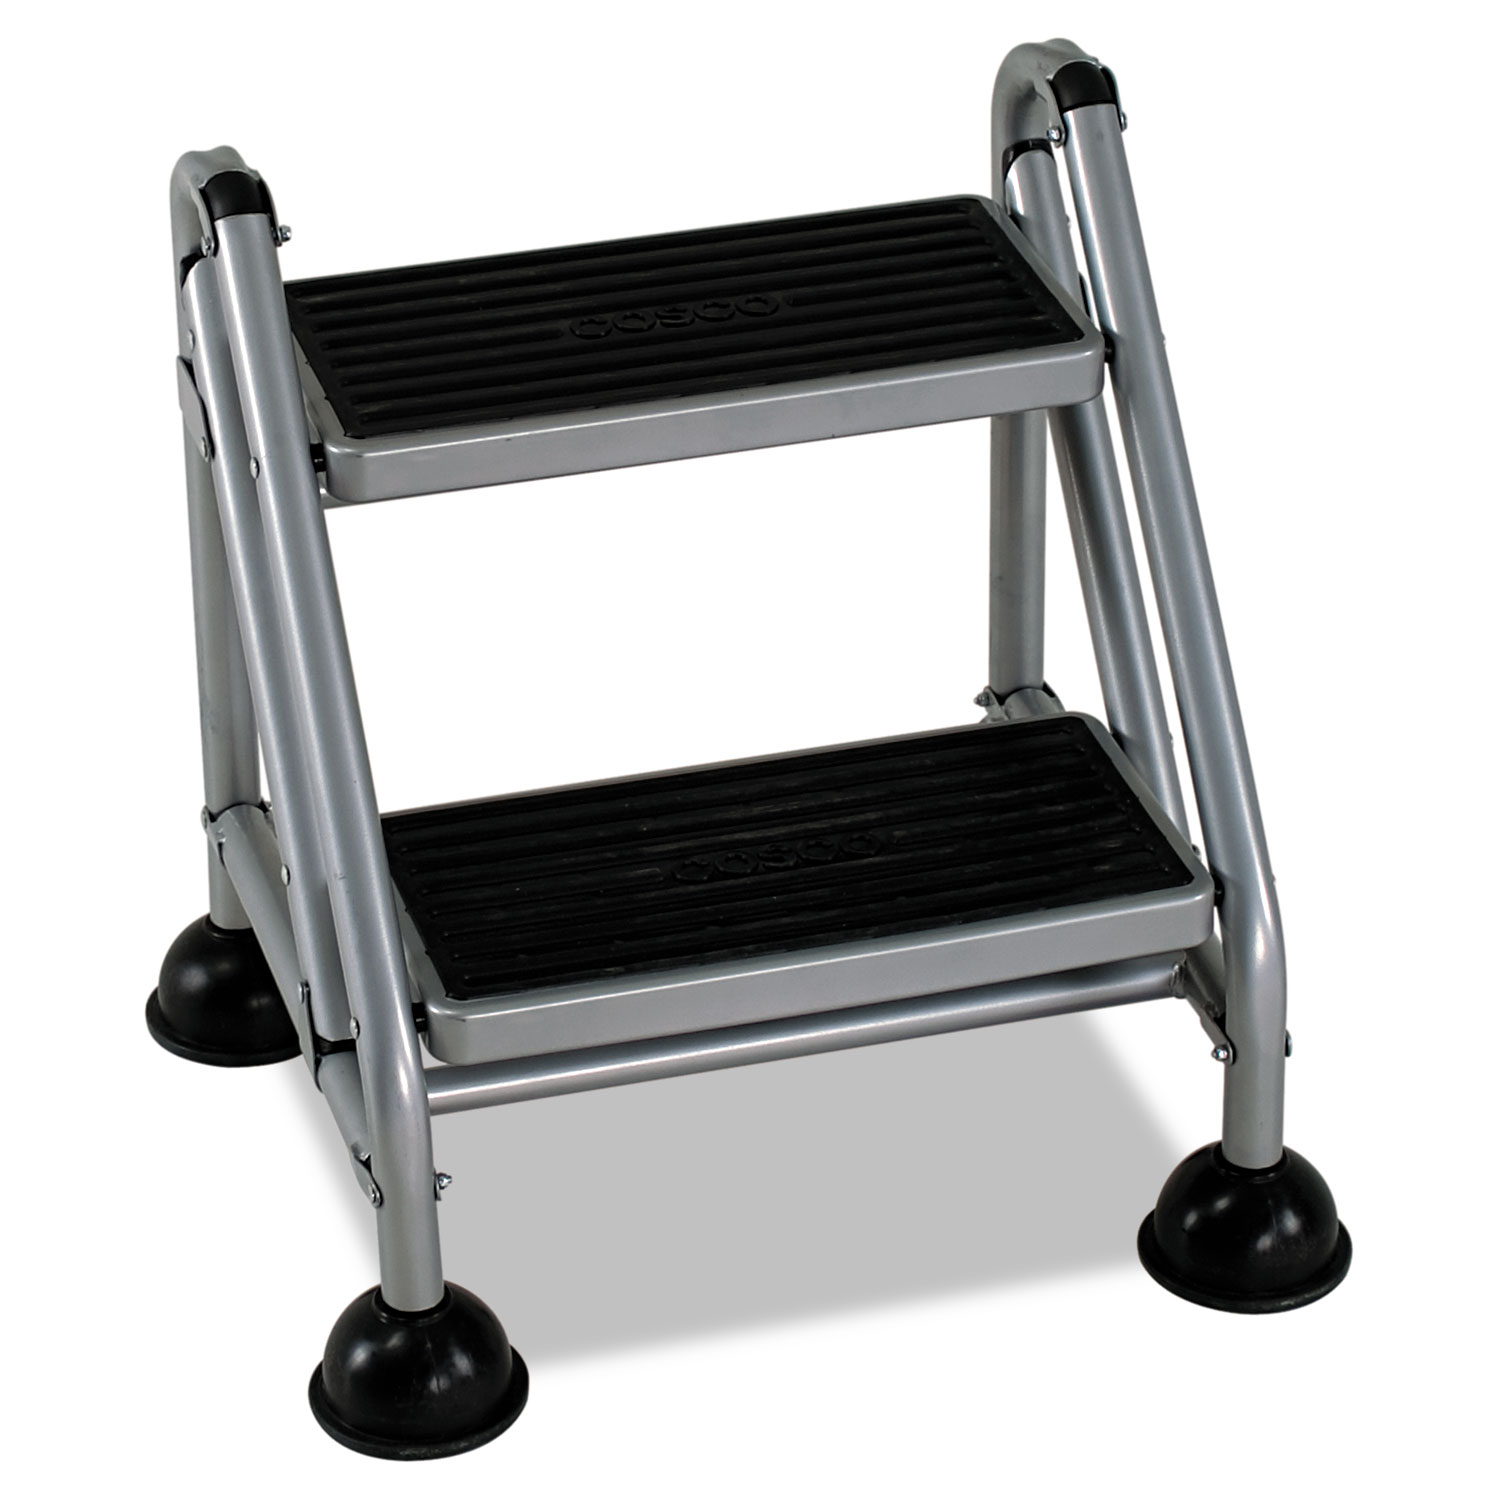 Metal Step Stool Rolling Commercial Step Stool 2 Step 19 7 10 Spread Platinum